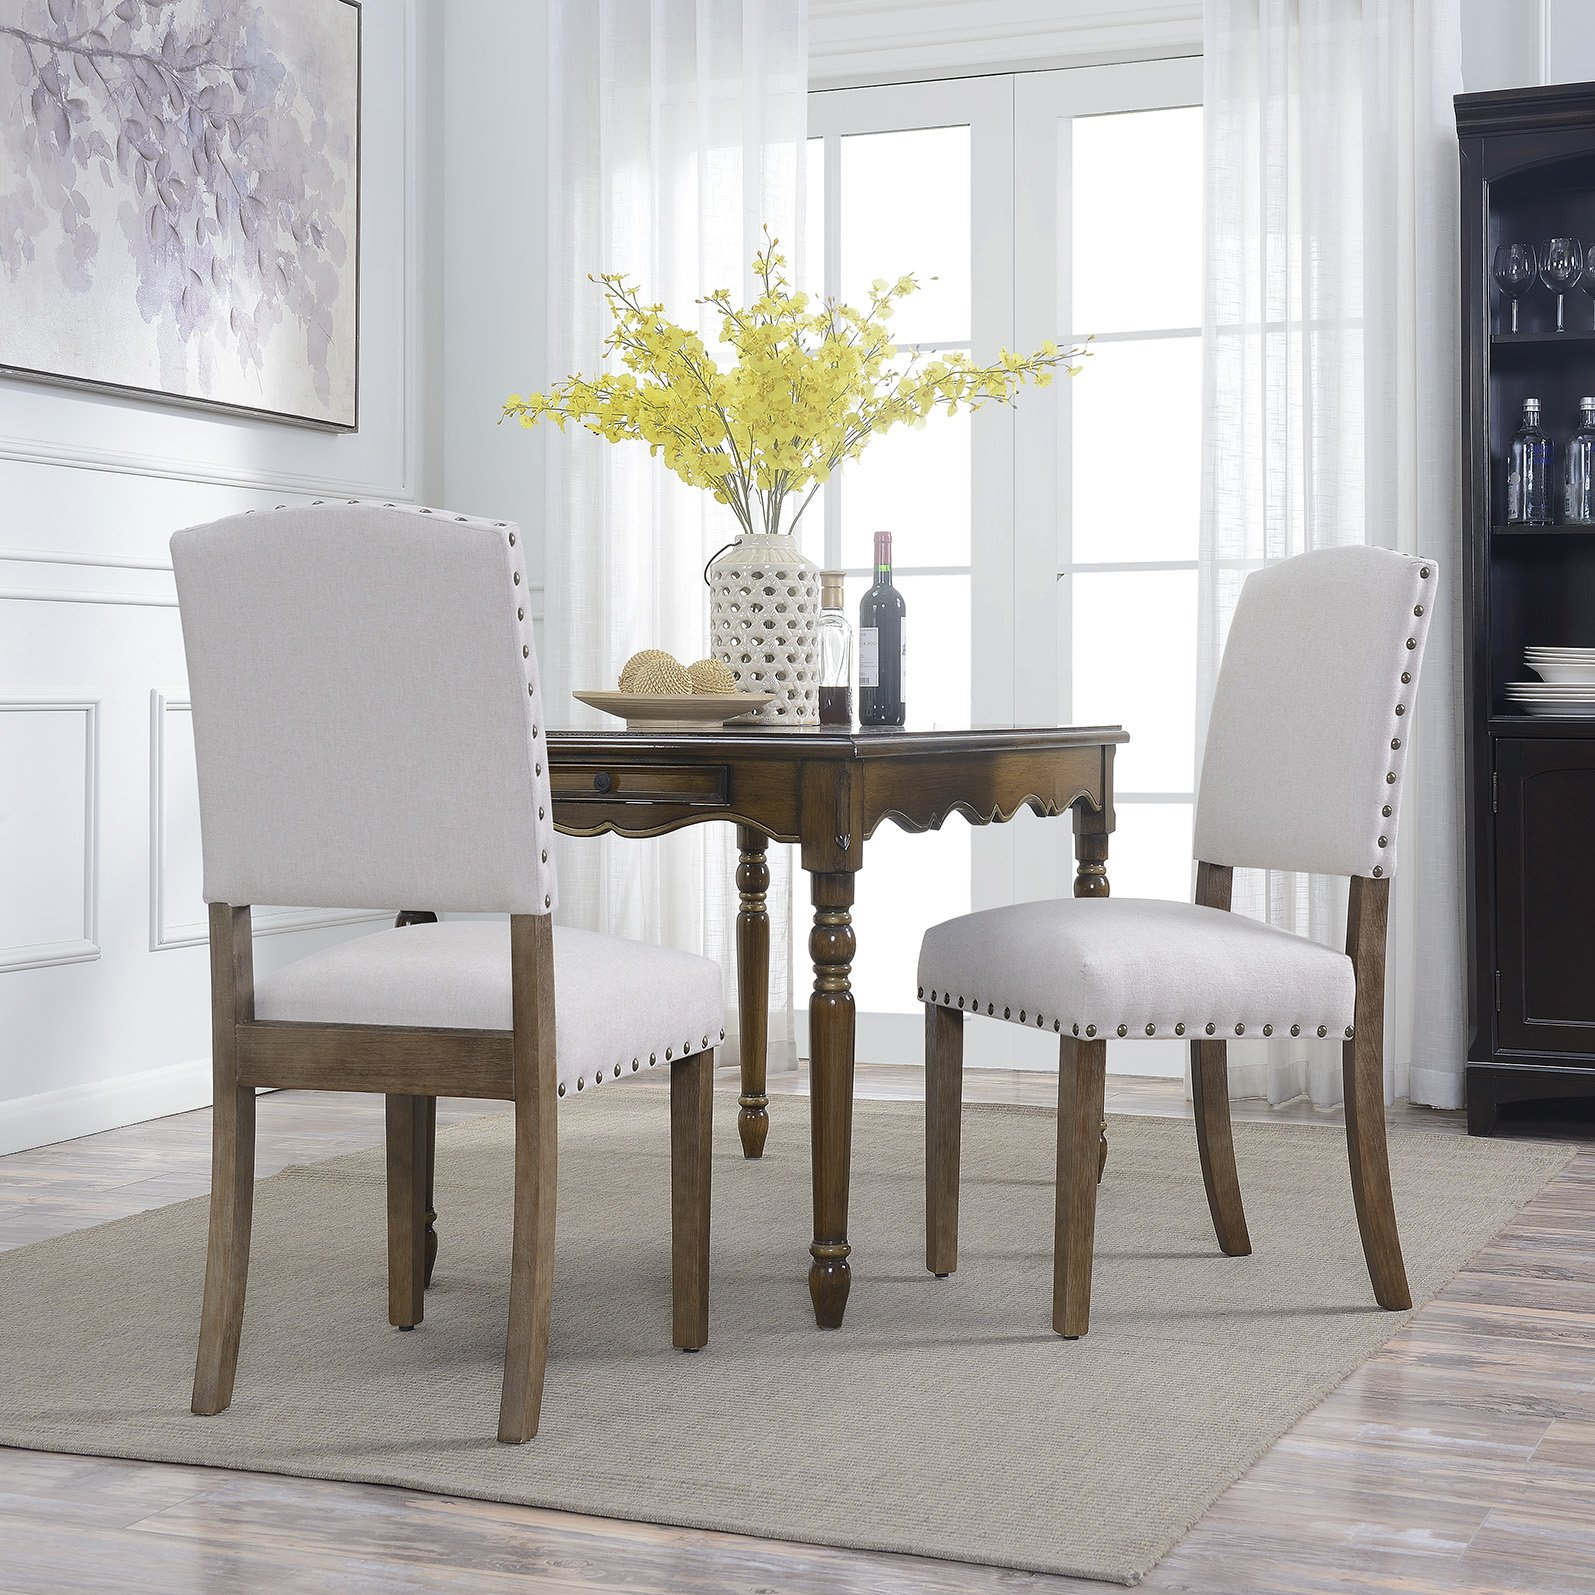 Belleze Contemporary Classic Dining Chair Set of (2) Linen Padded Upholstered Cushion High Back Solid Wood Legs, Beige